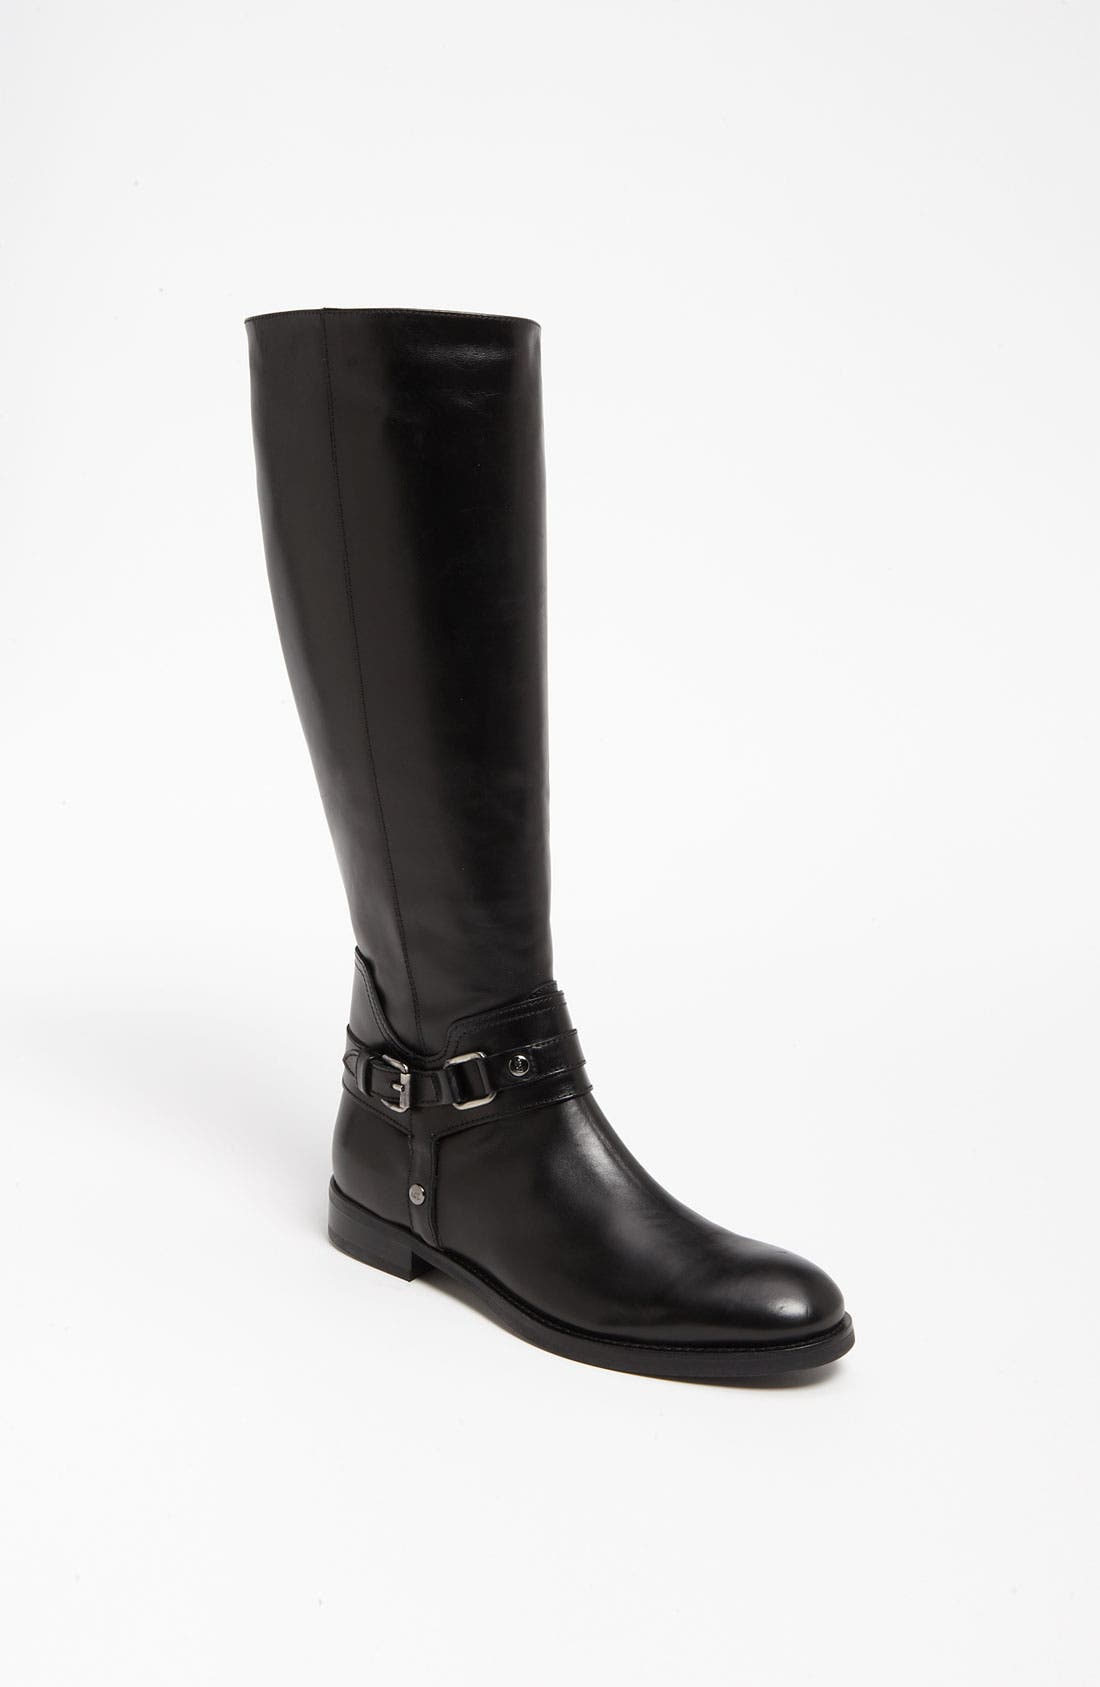 Alternate Image 1 Selected - Attilio Giusti Leombruni 'Harness' Boot (Nordstrom Exclusive)